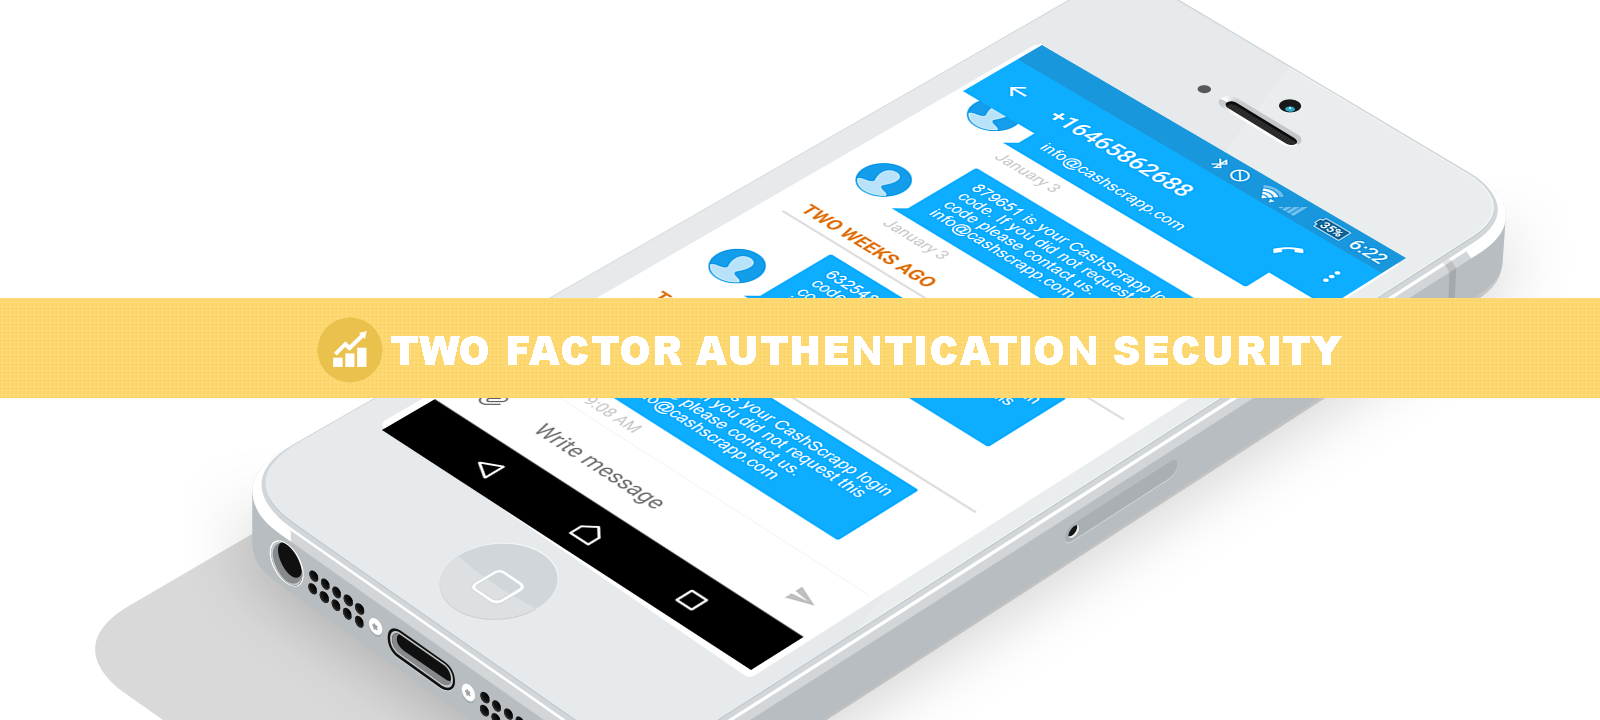 Two factor authentication for the best security in the industry.